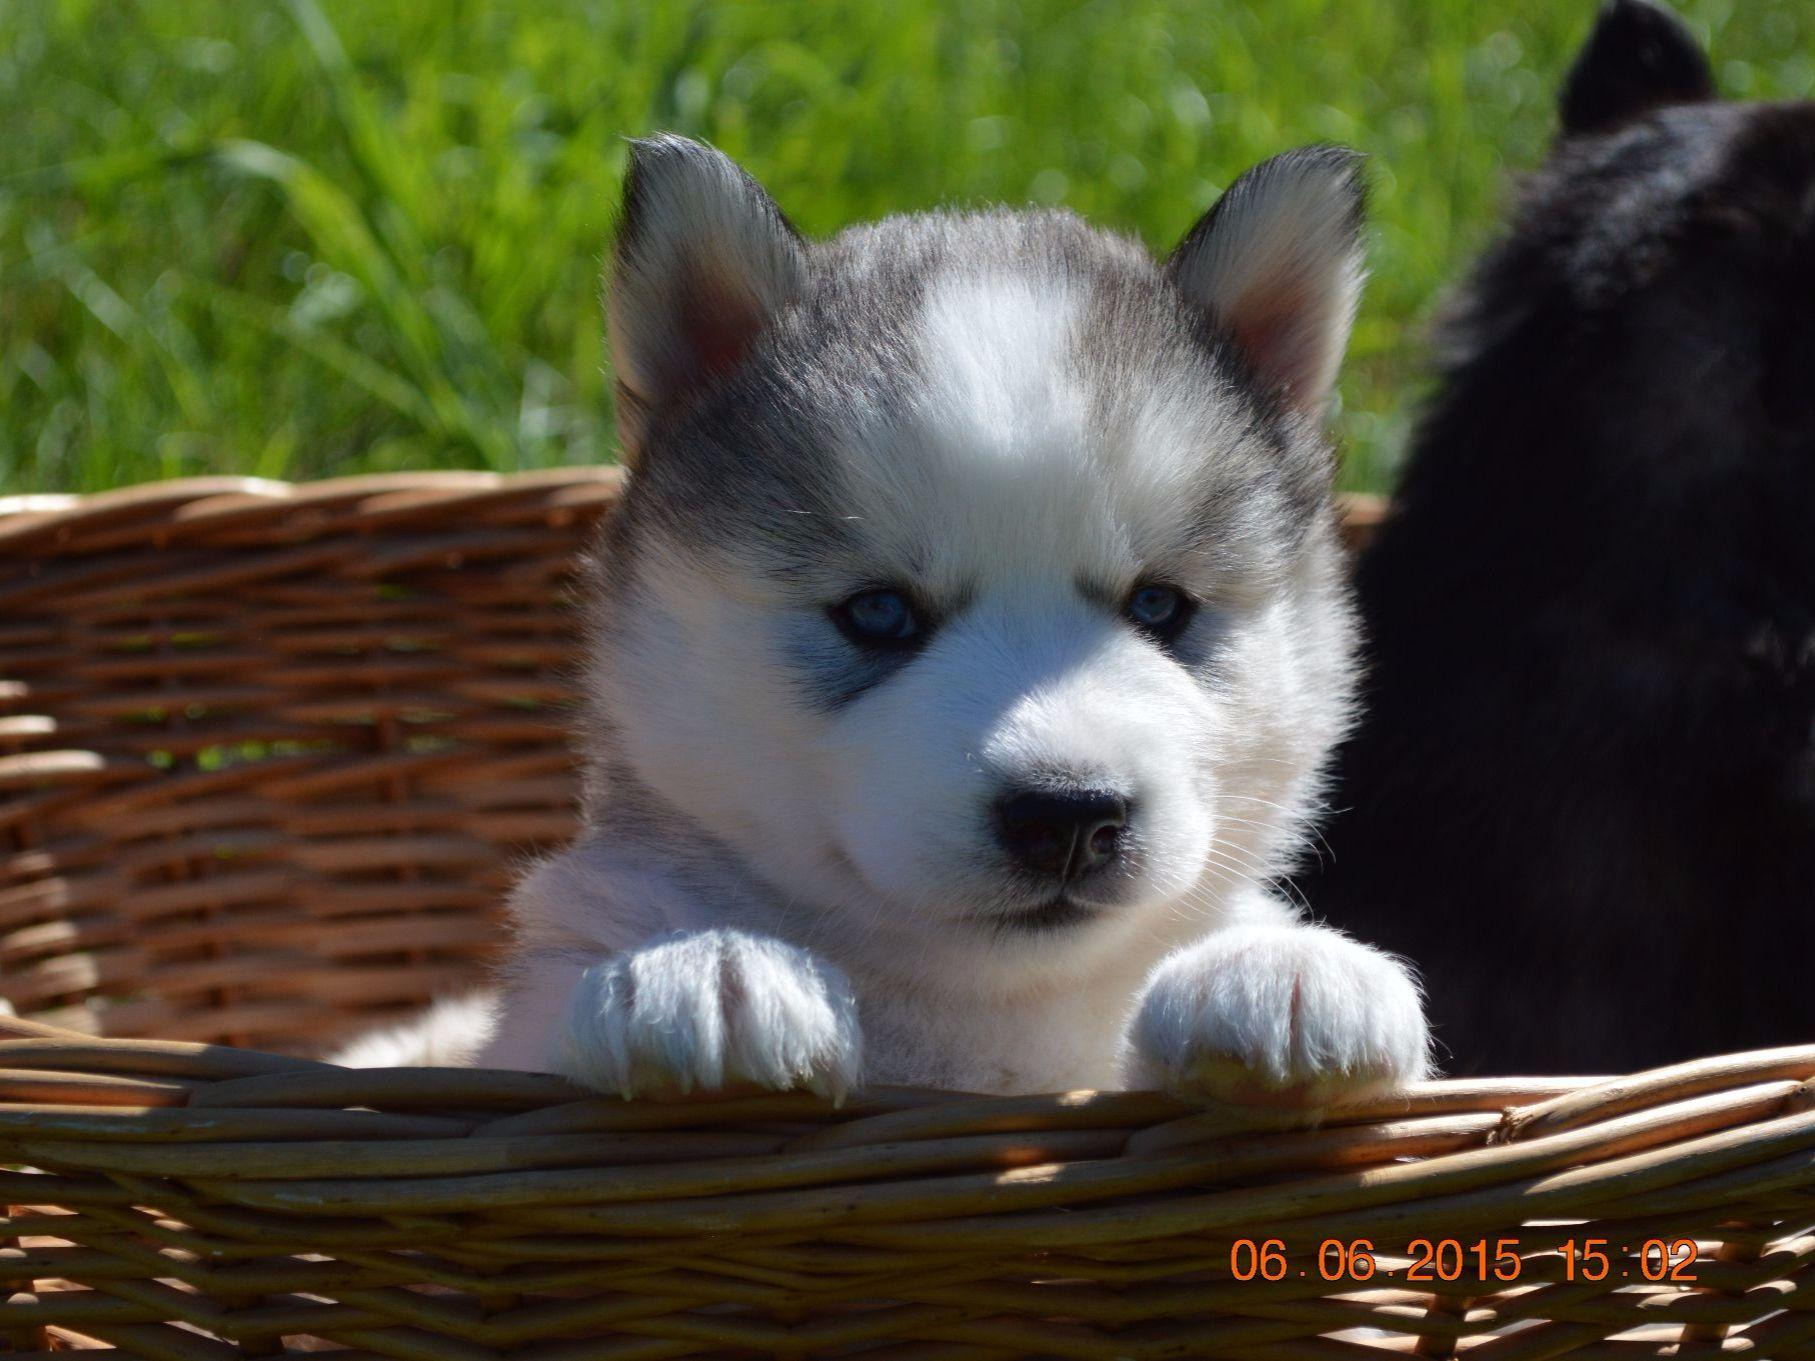 Husky puppies for adoption in california - View All 62 Images